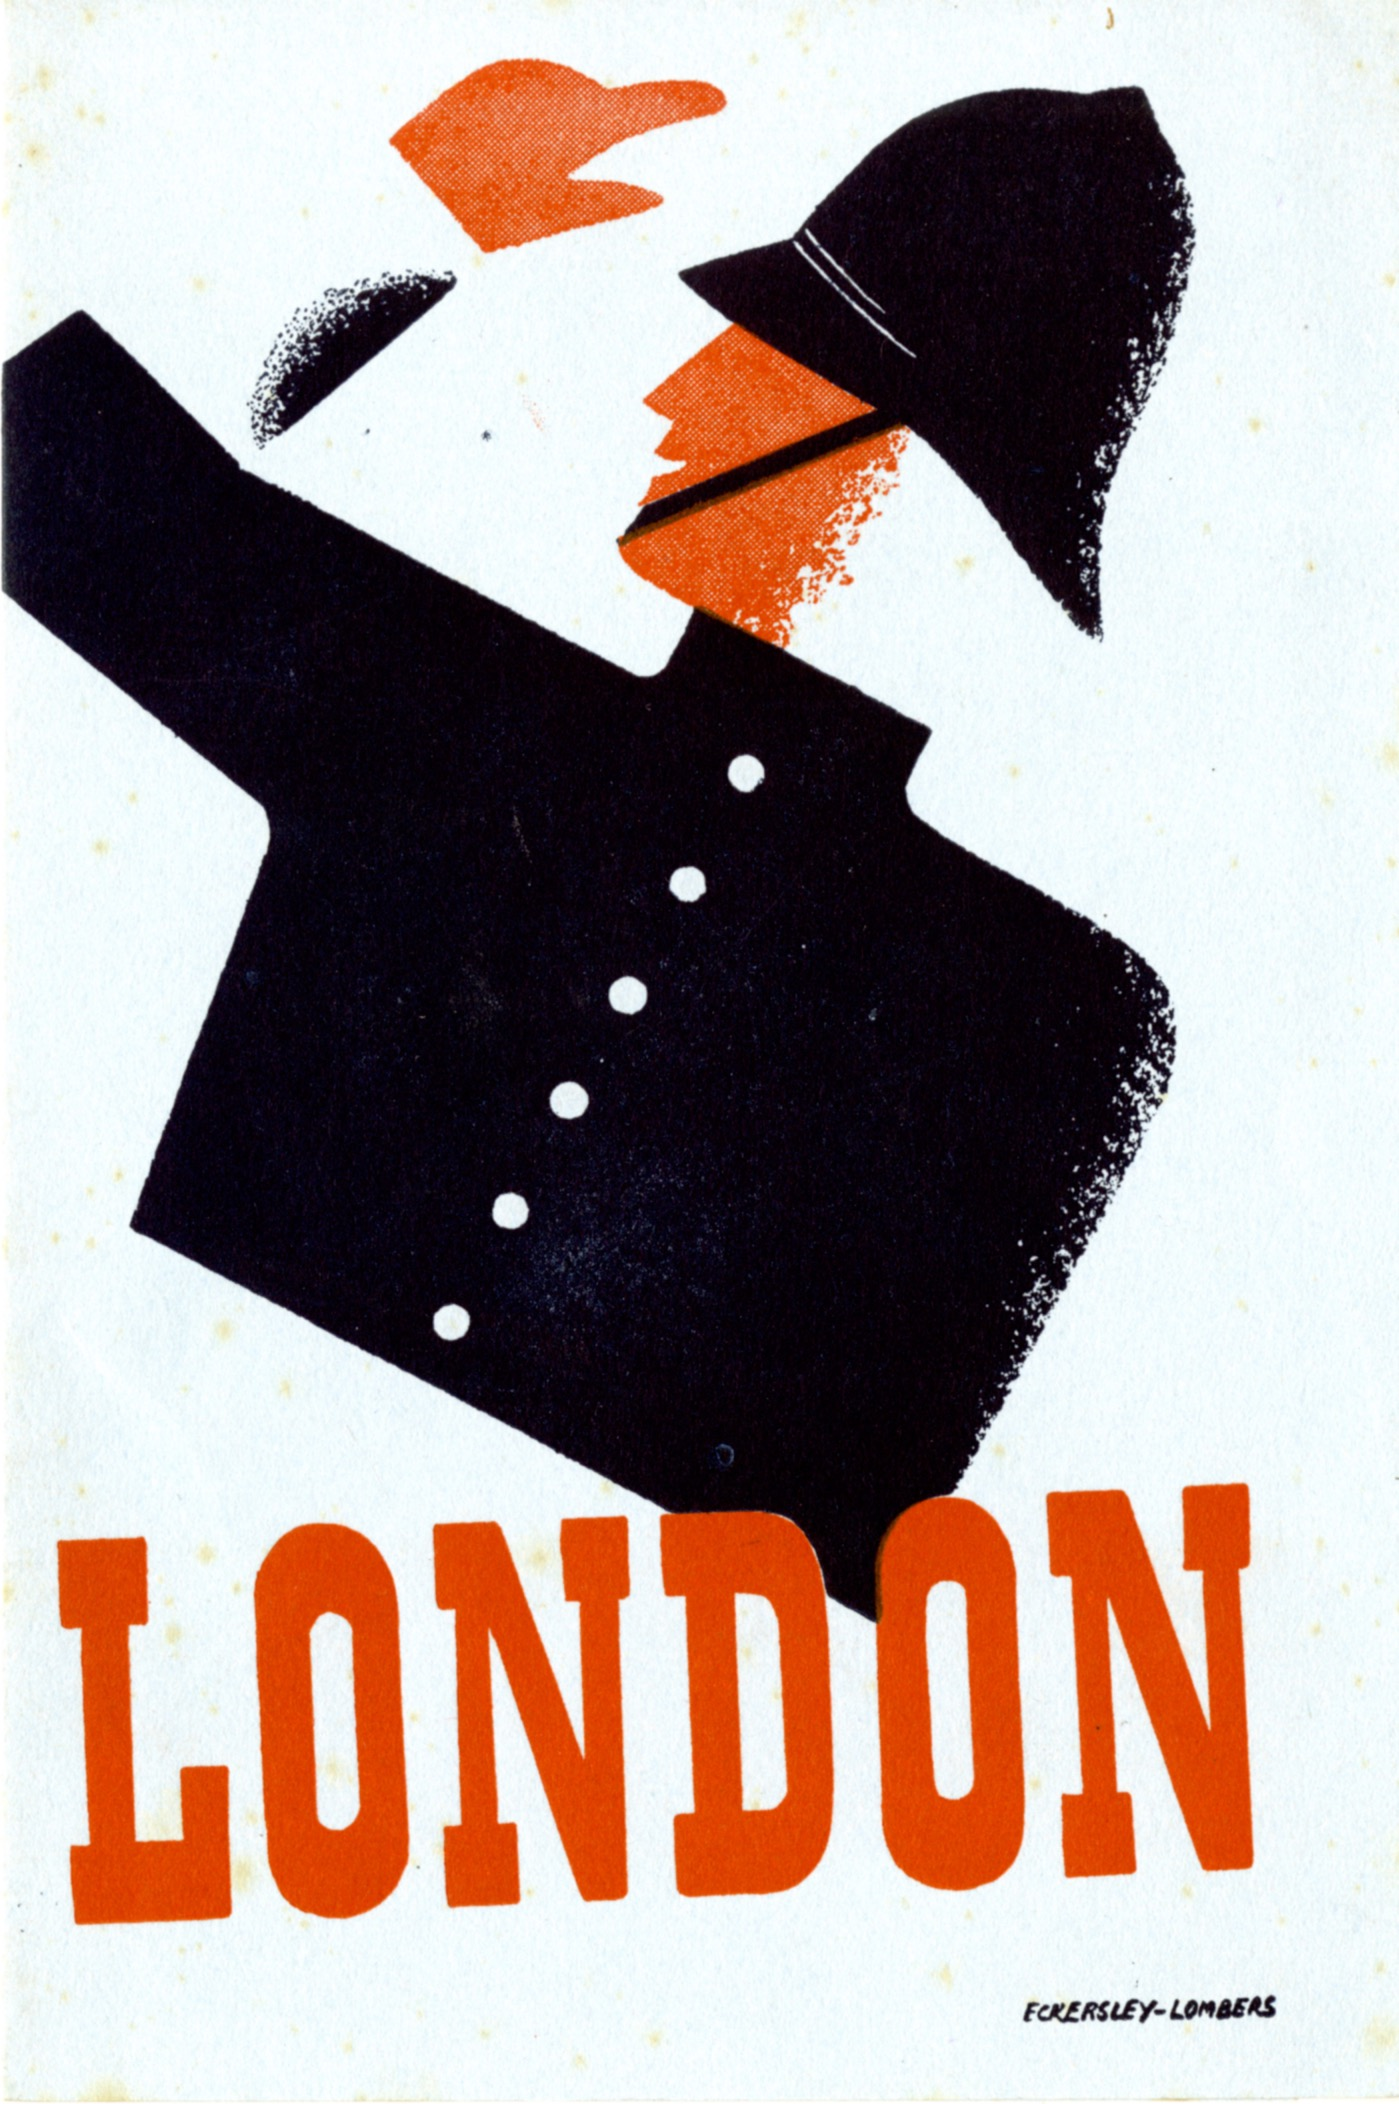 Poster featuring a police officer in uniform and the text 'London'